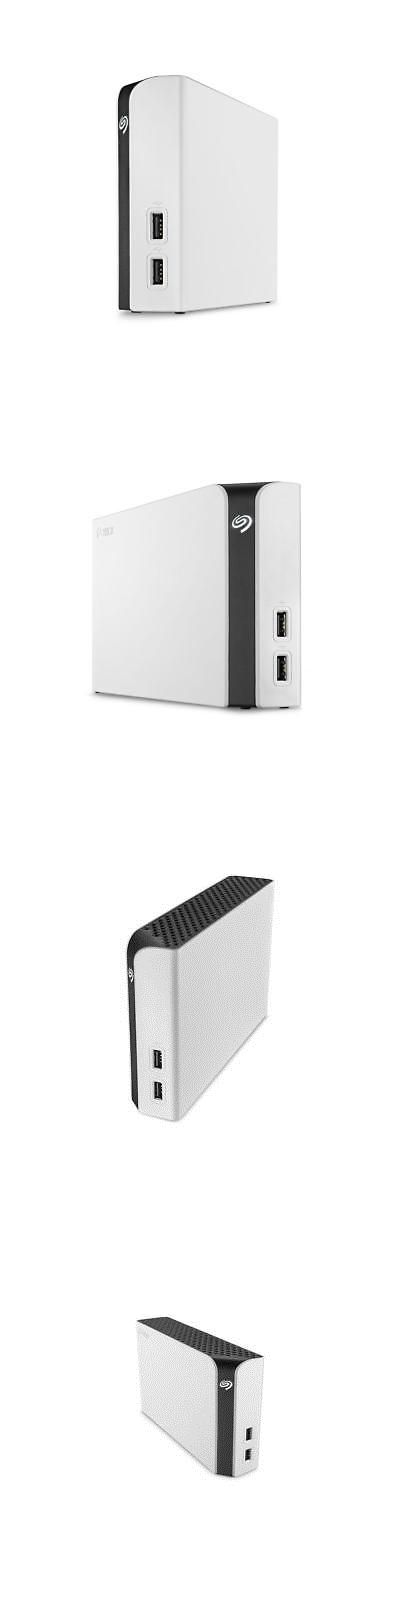 Seagate 8TB Game Drive Hub with Dual USB 3.0 Ports for Xbox One #STGG8000400